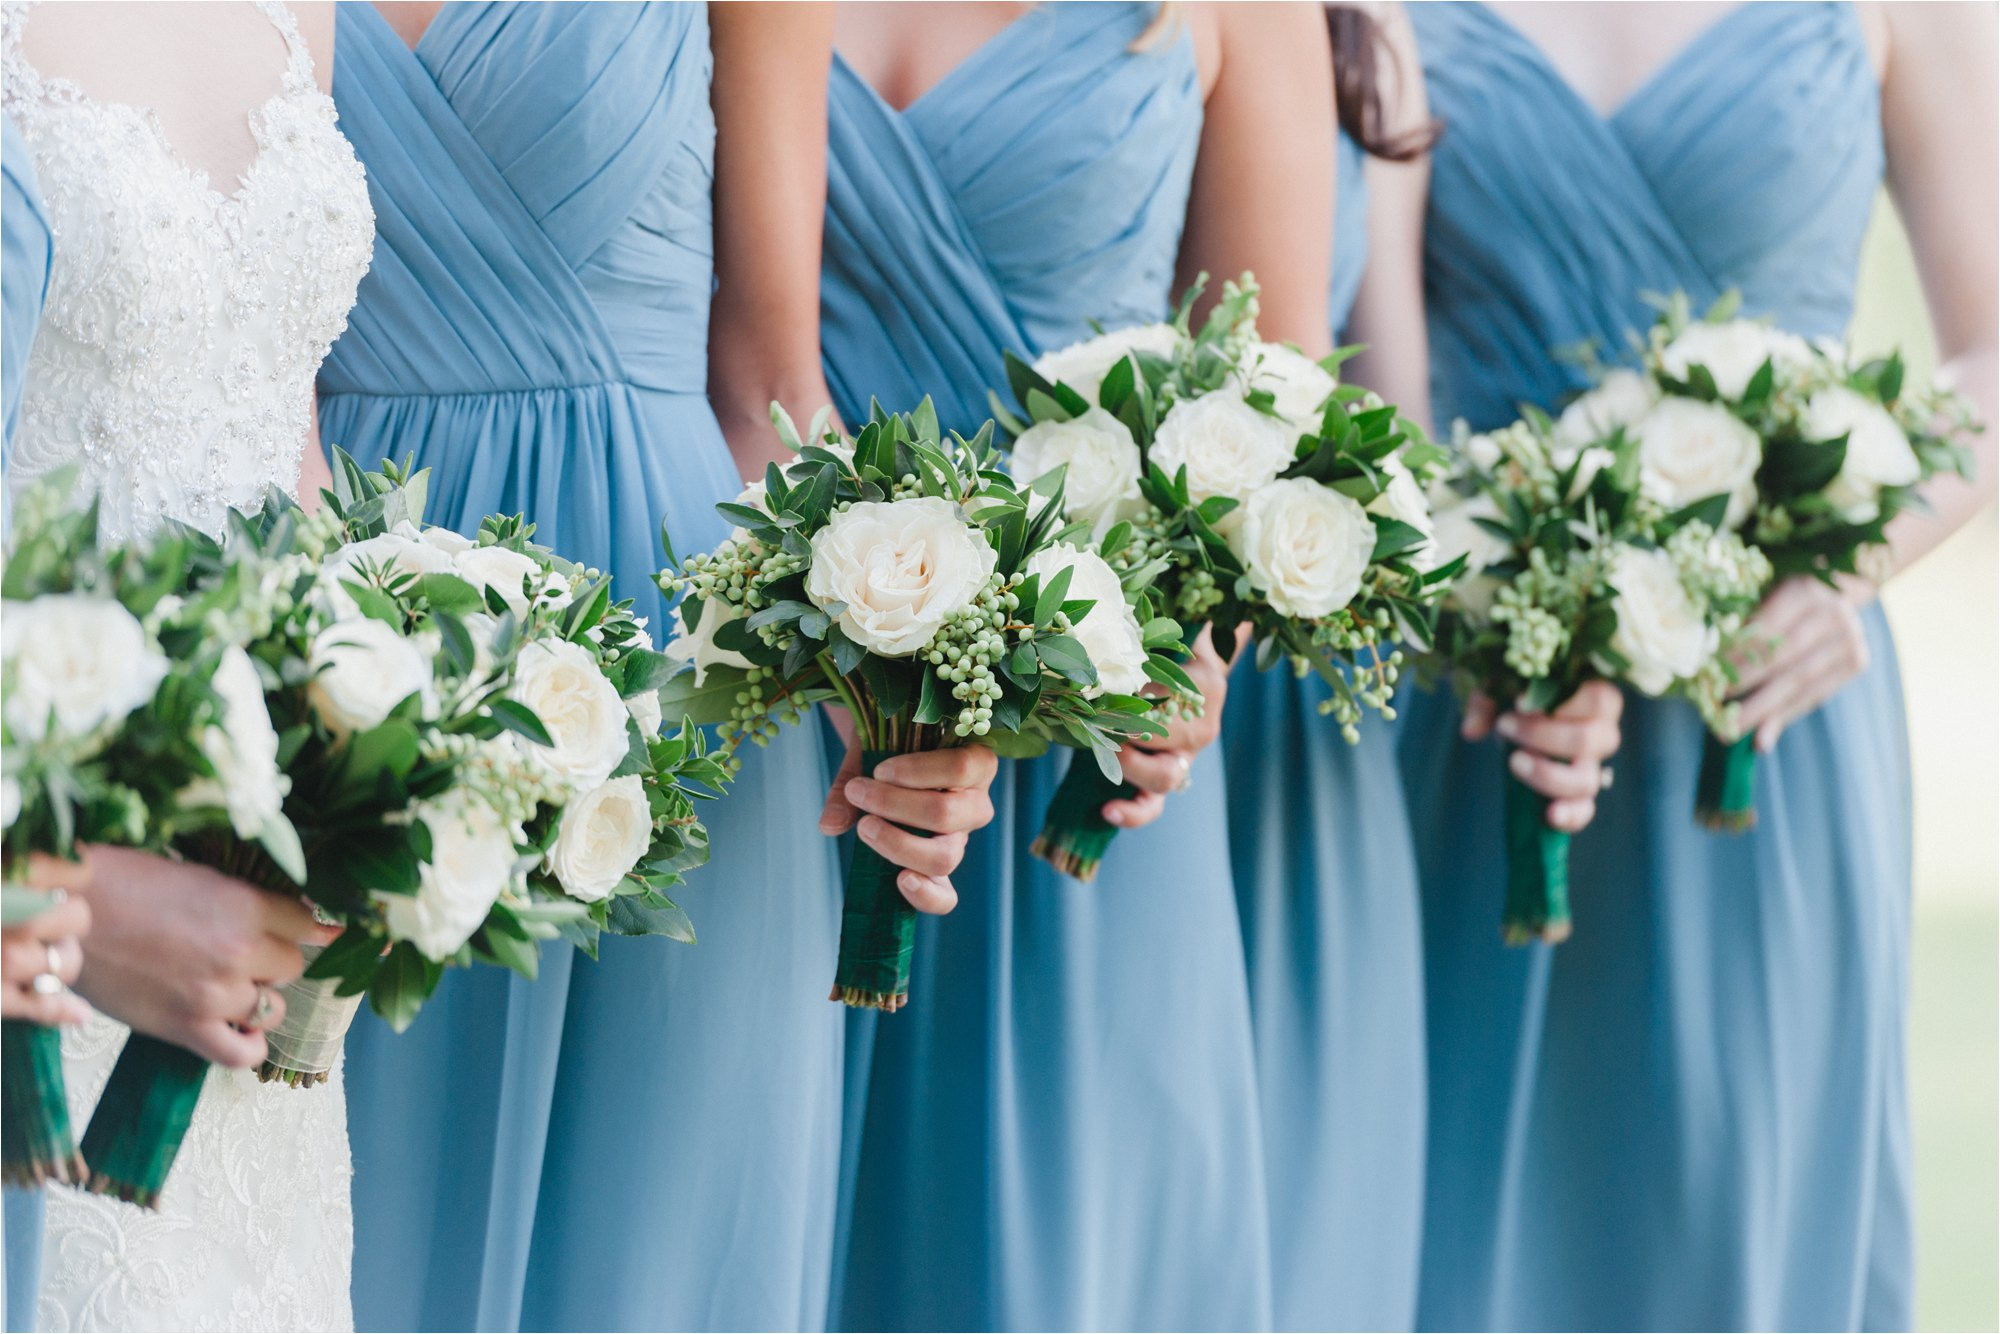 white and green bouquets with blue bridesmaid dresses